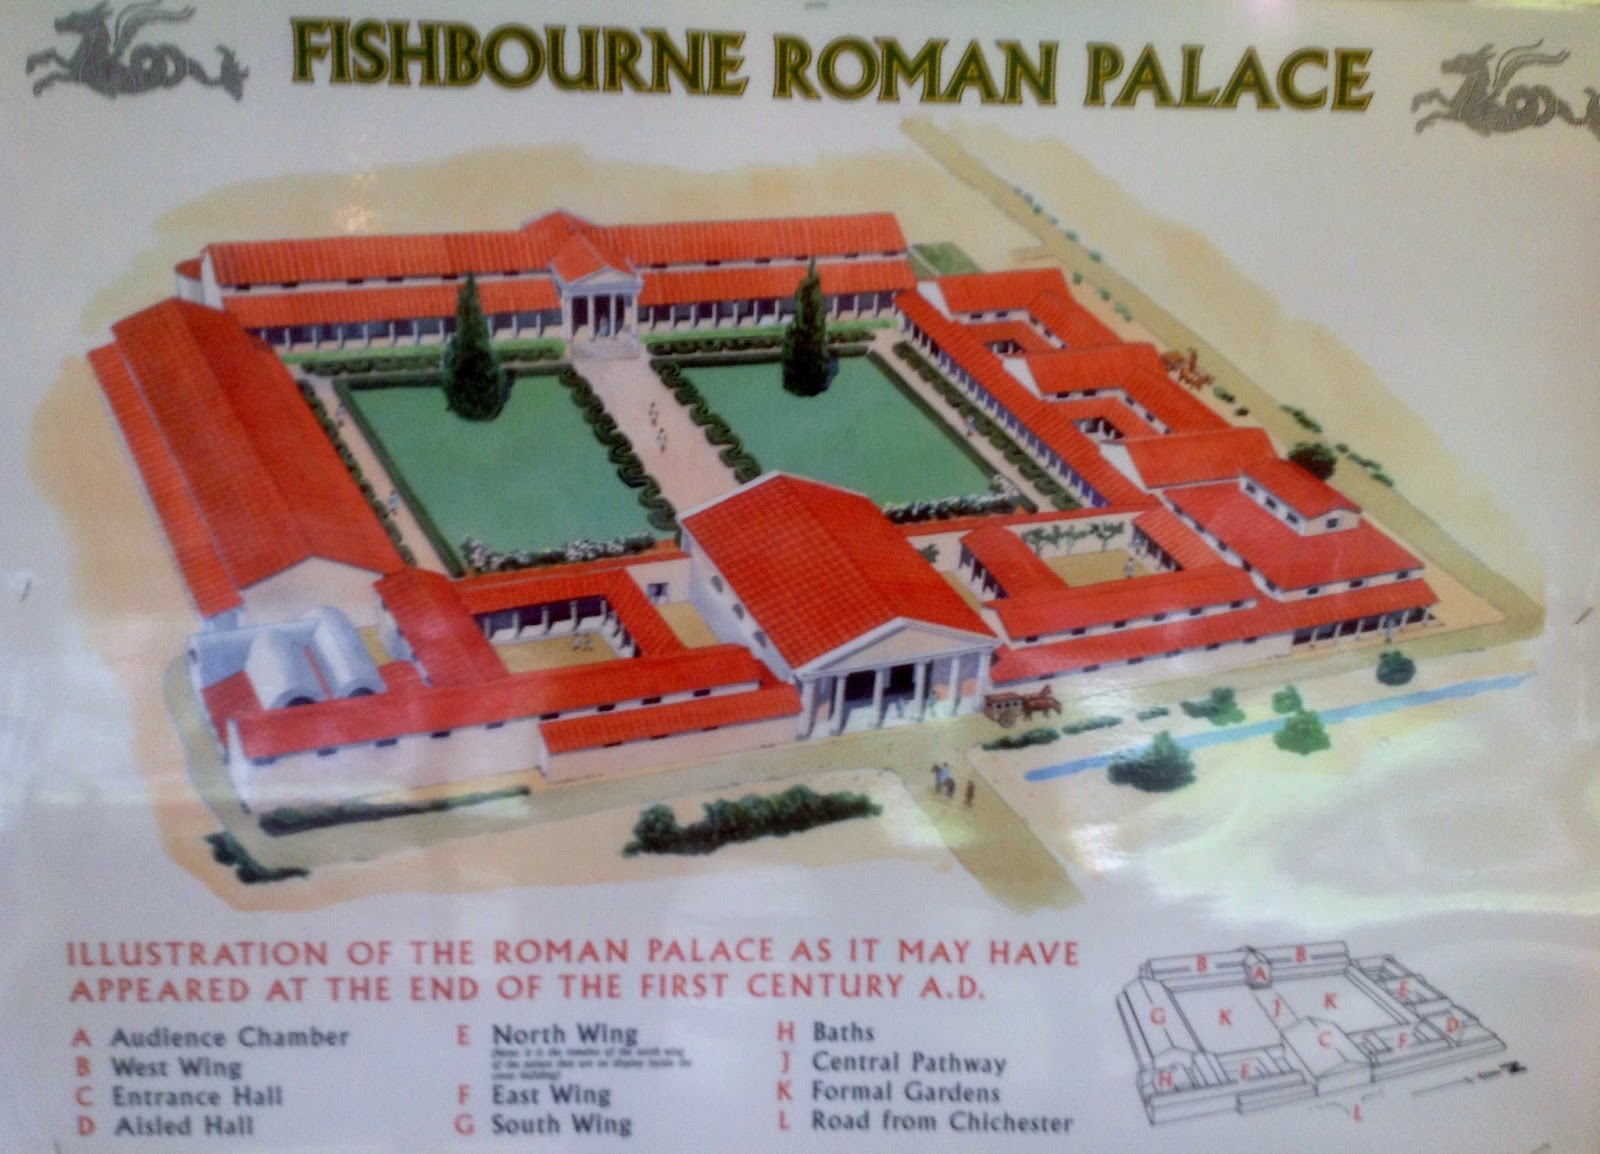 Fishbourne Roman Palace Floor Plan